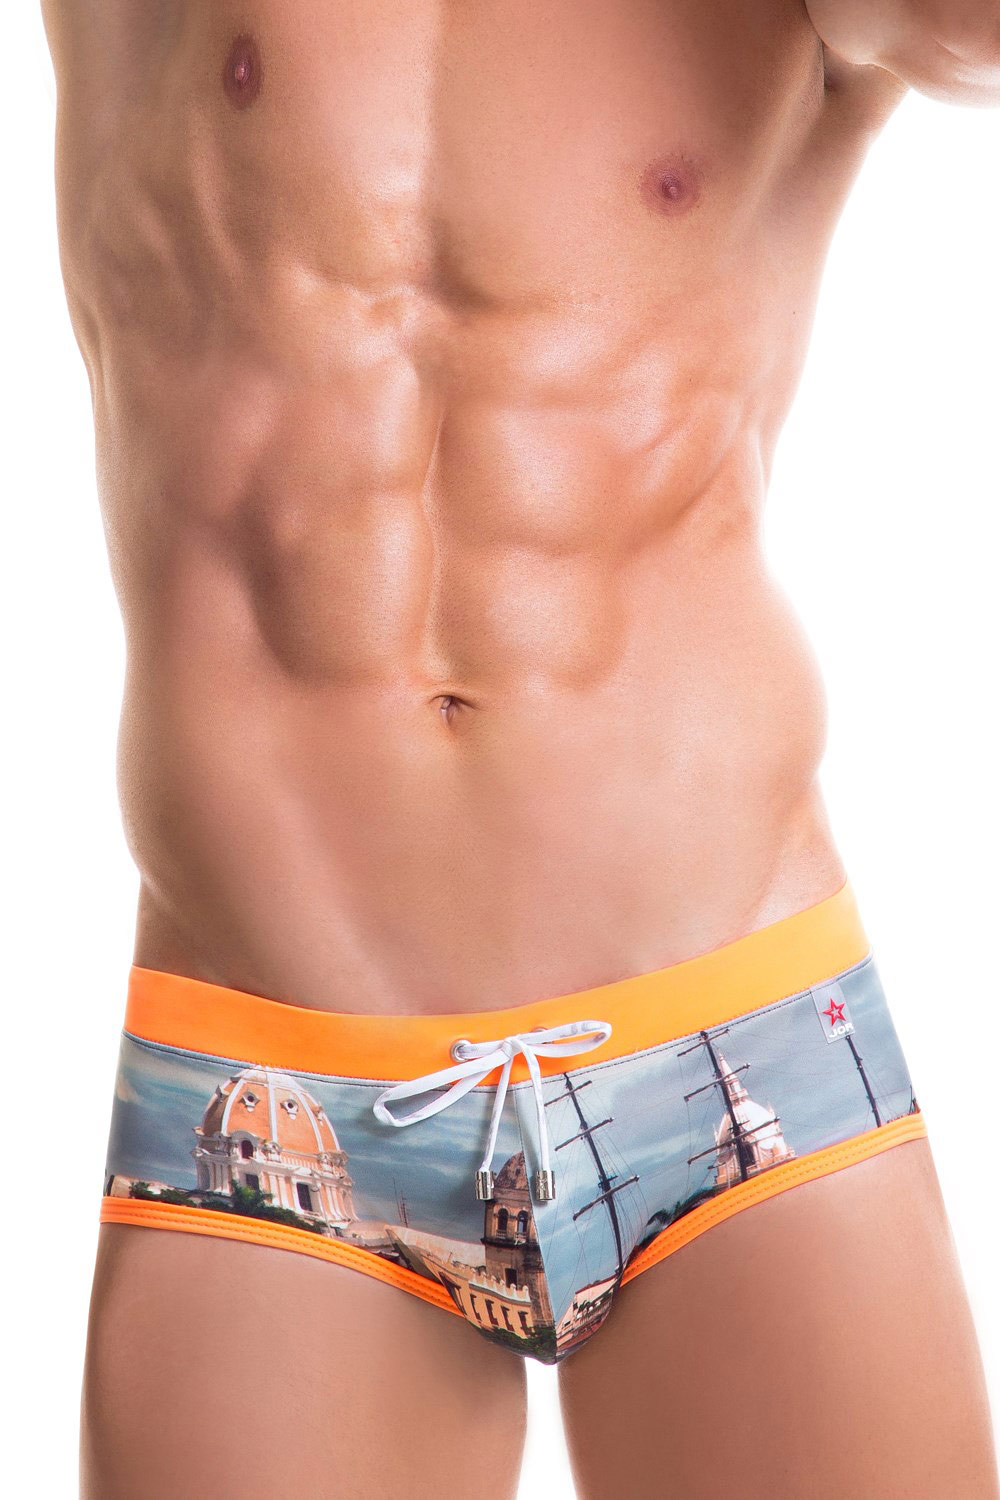 JOR beach brief at oboy.com